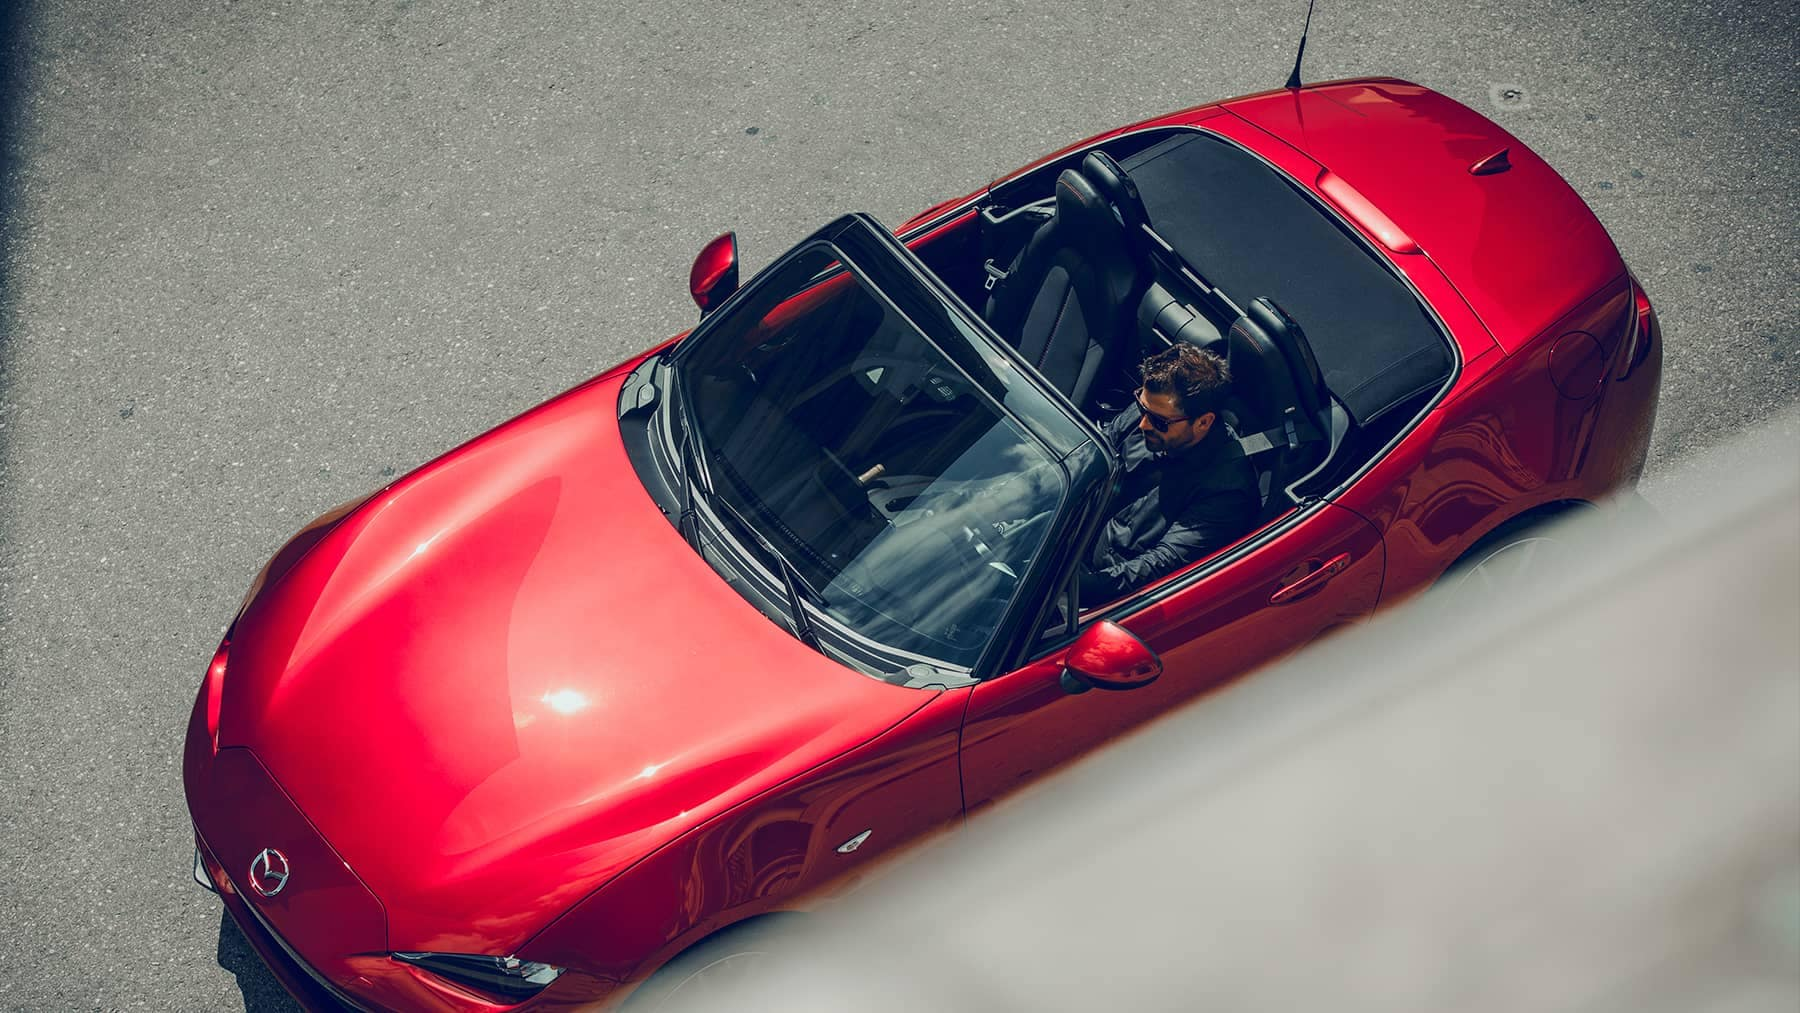 2019 Mazda MX-5 Miata parked with the top down